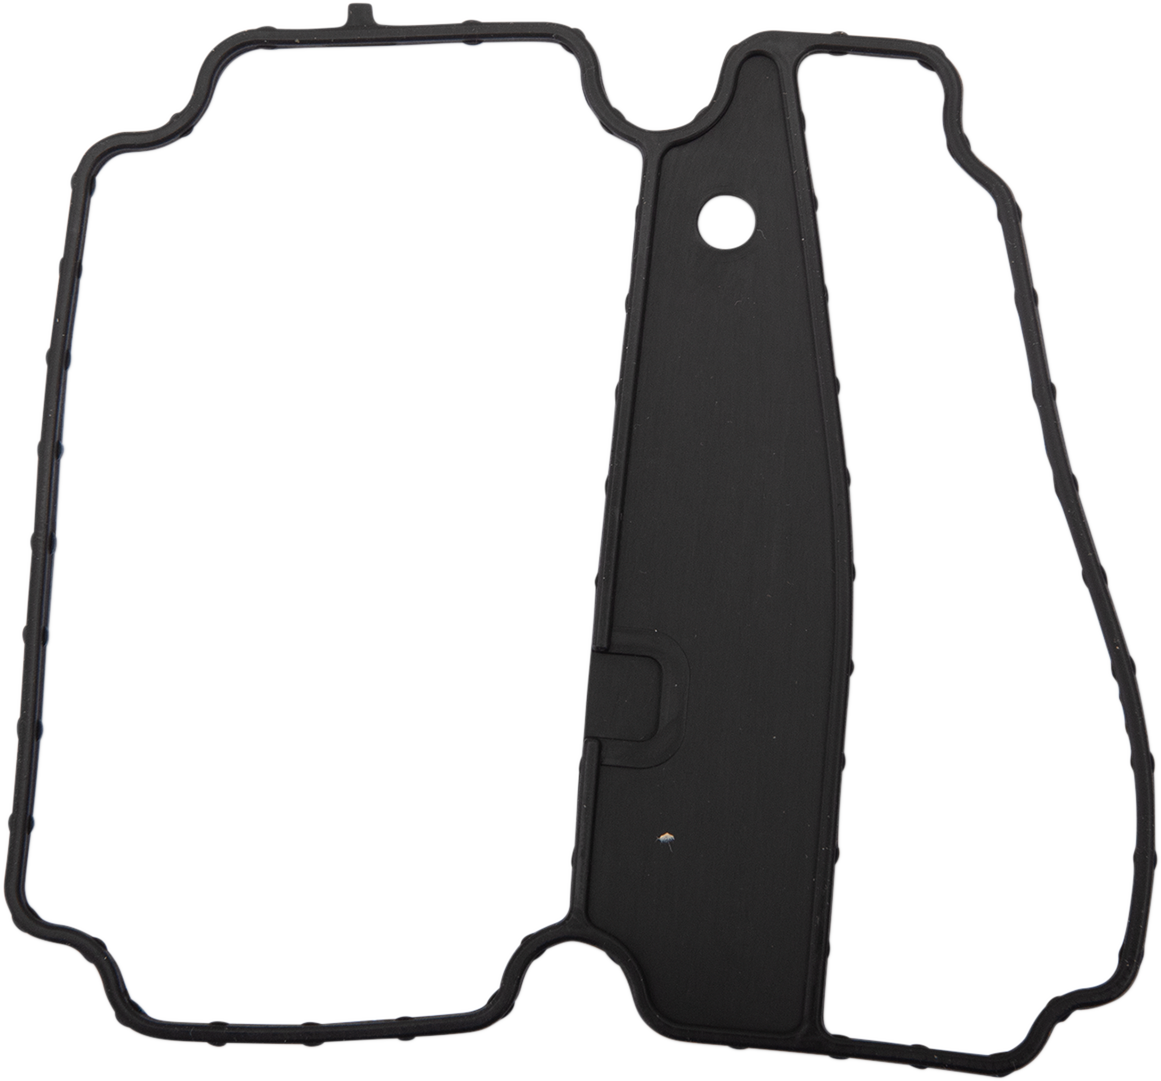 Cometic Transmission Top Cover Gasket 18-20 Harley M8 Touring Softail FLHX FLFB